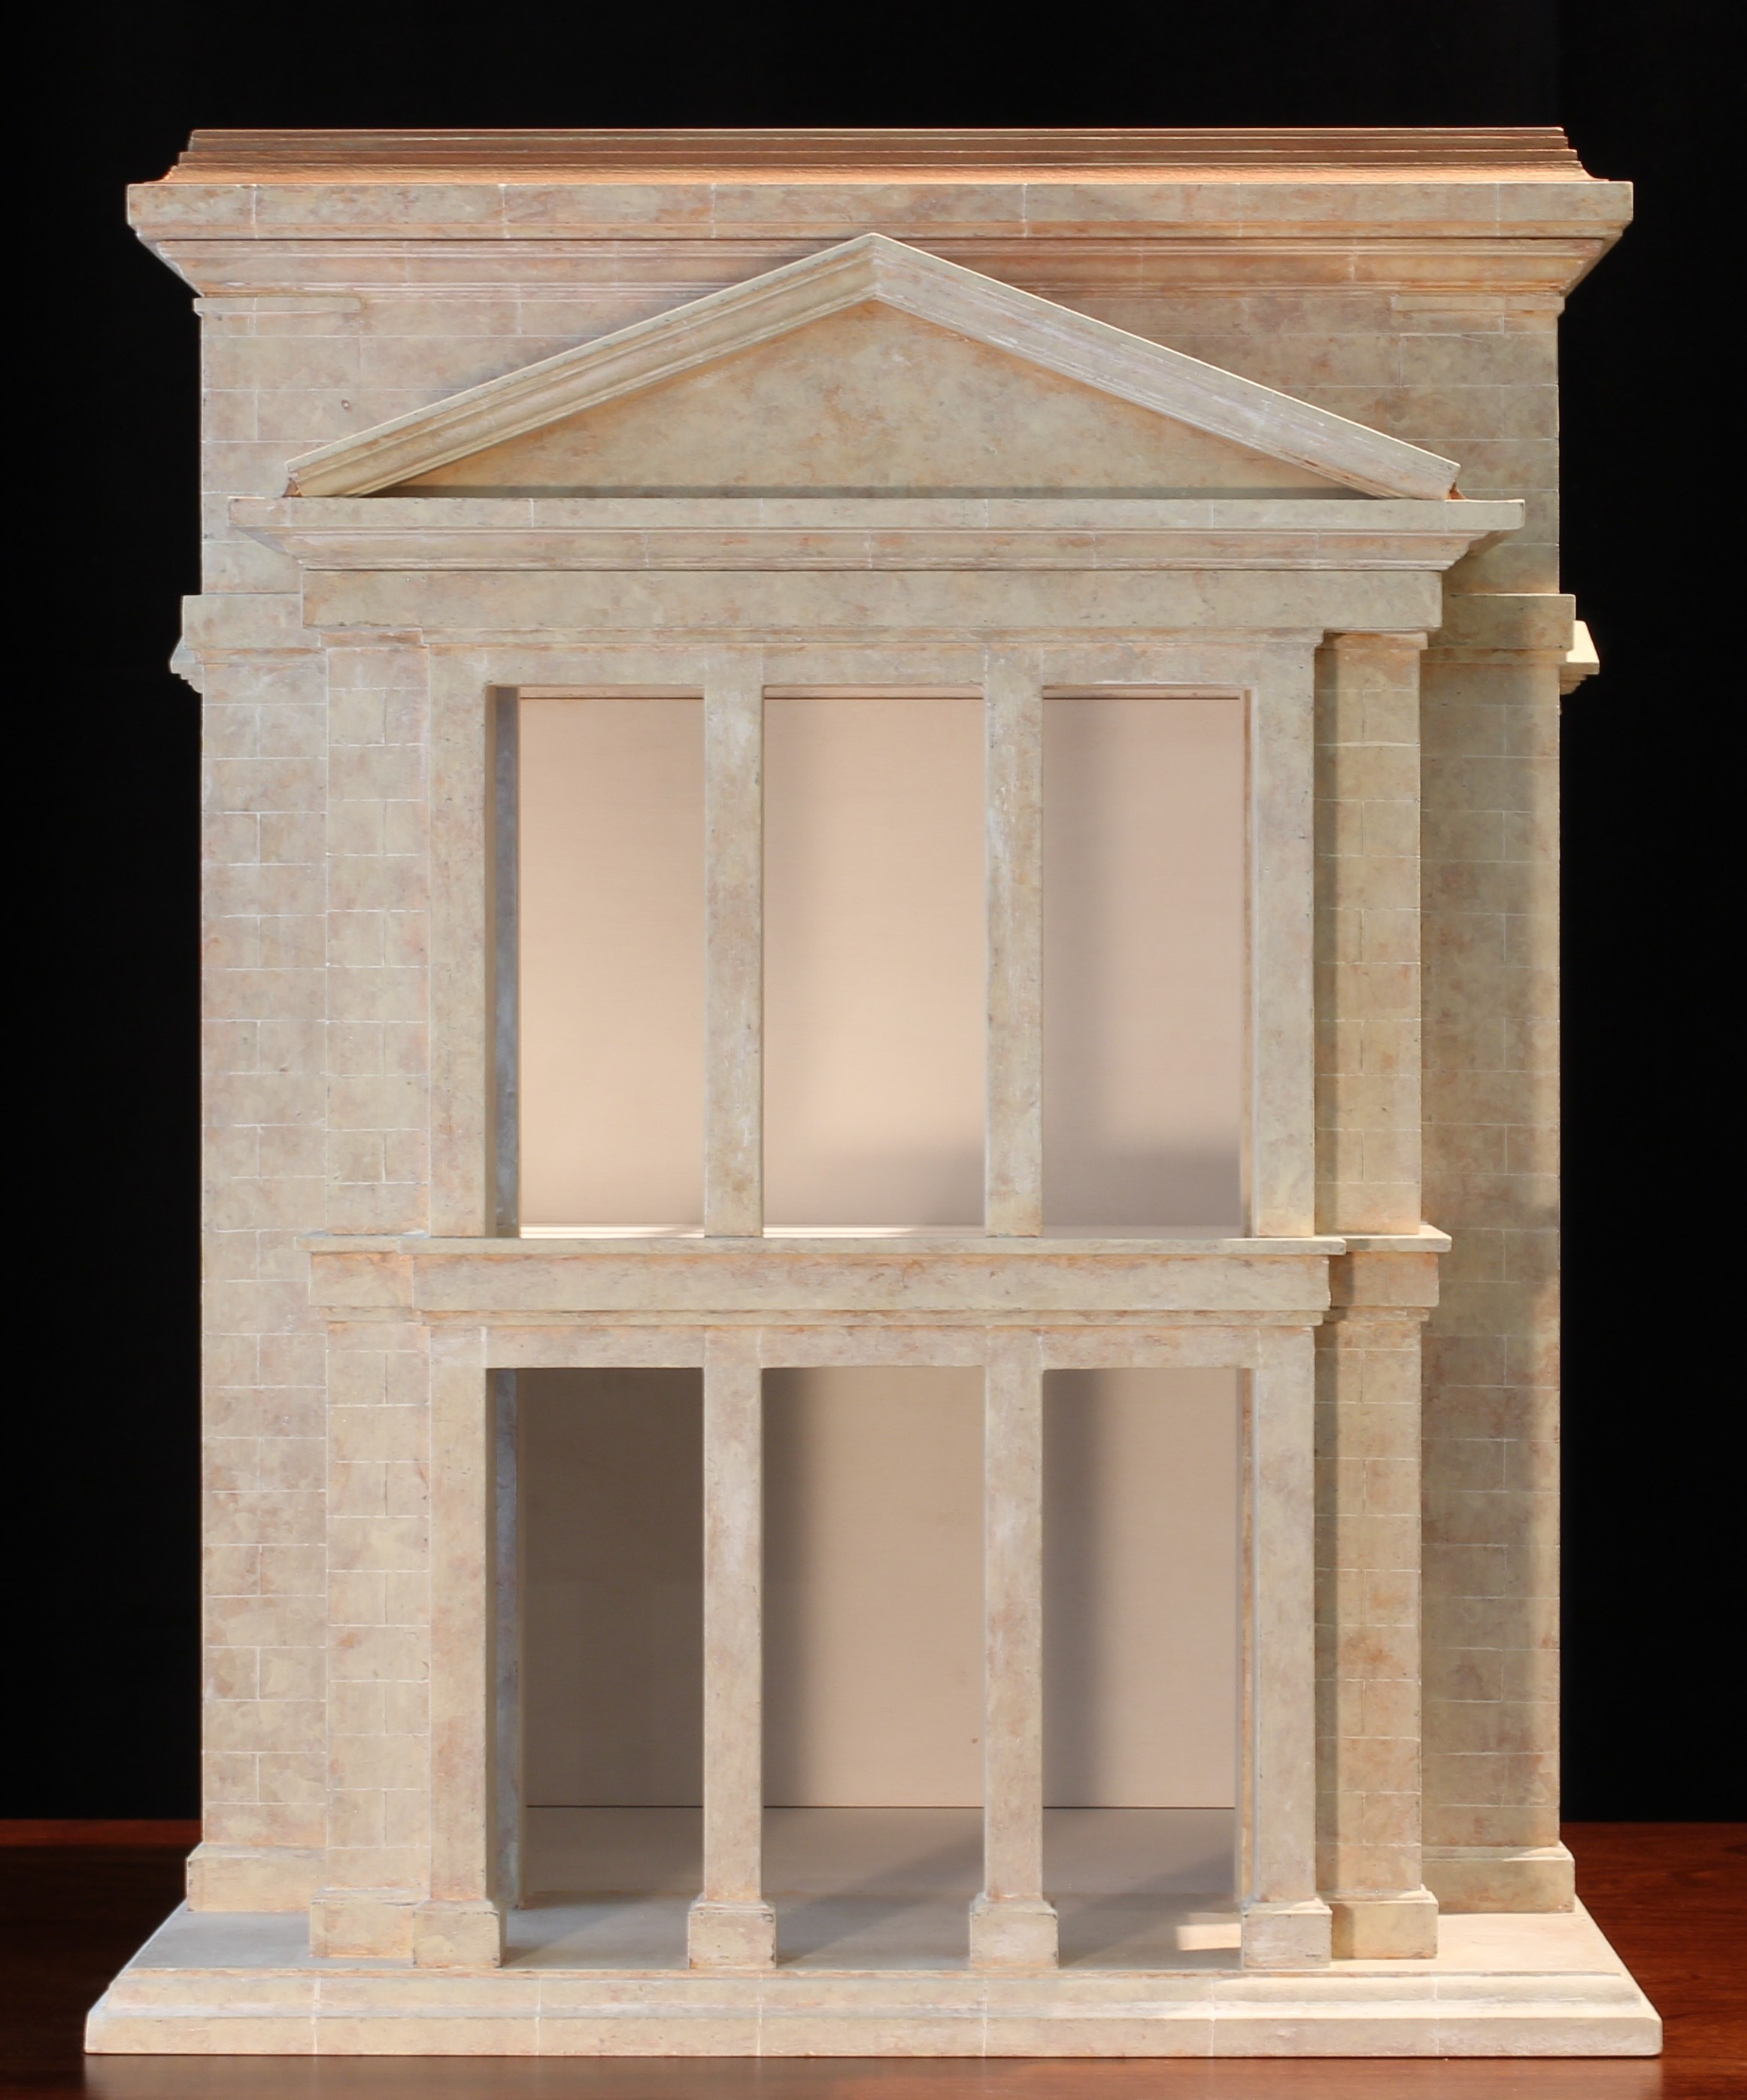 Furnish in 1:24 or 1:48 scale